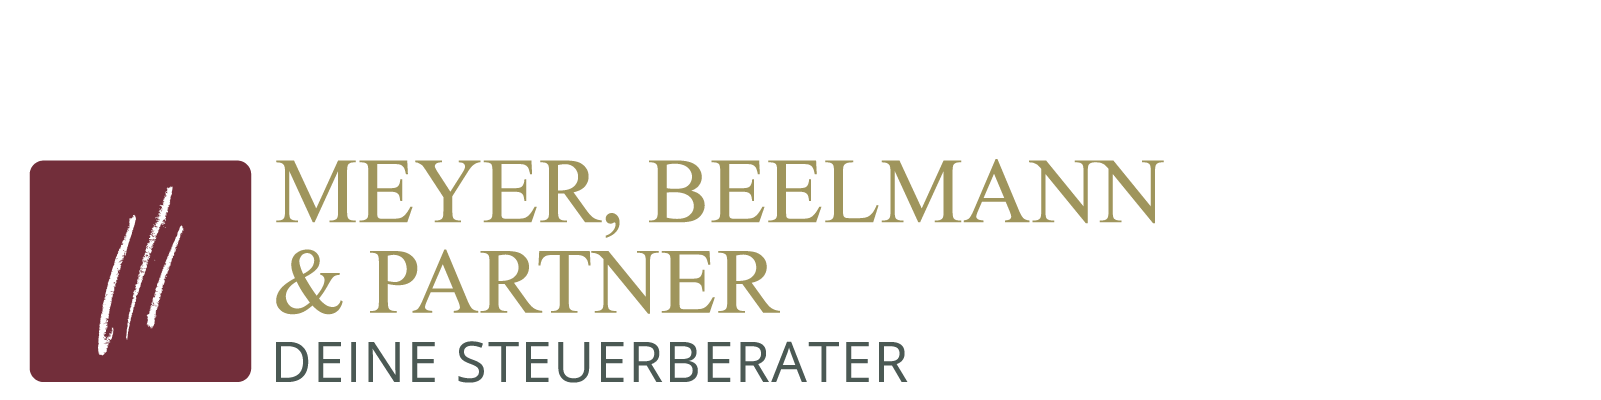 Meyer, Beelmann & Partner Logo